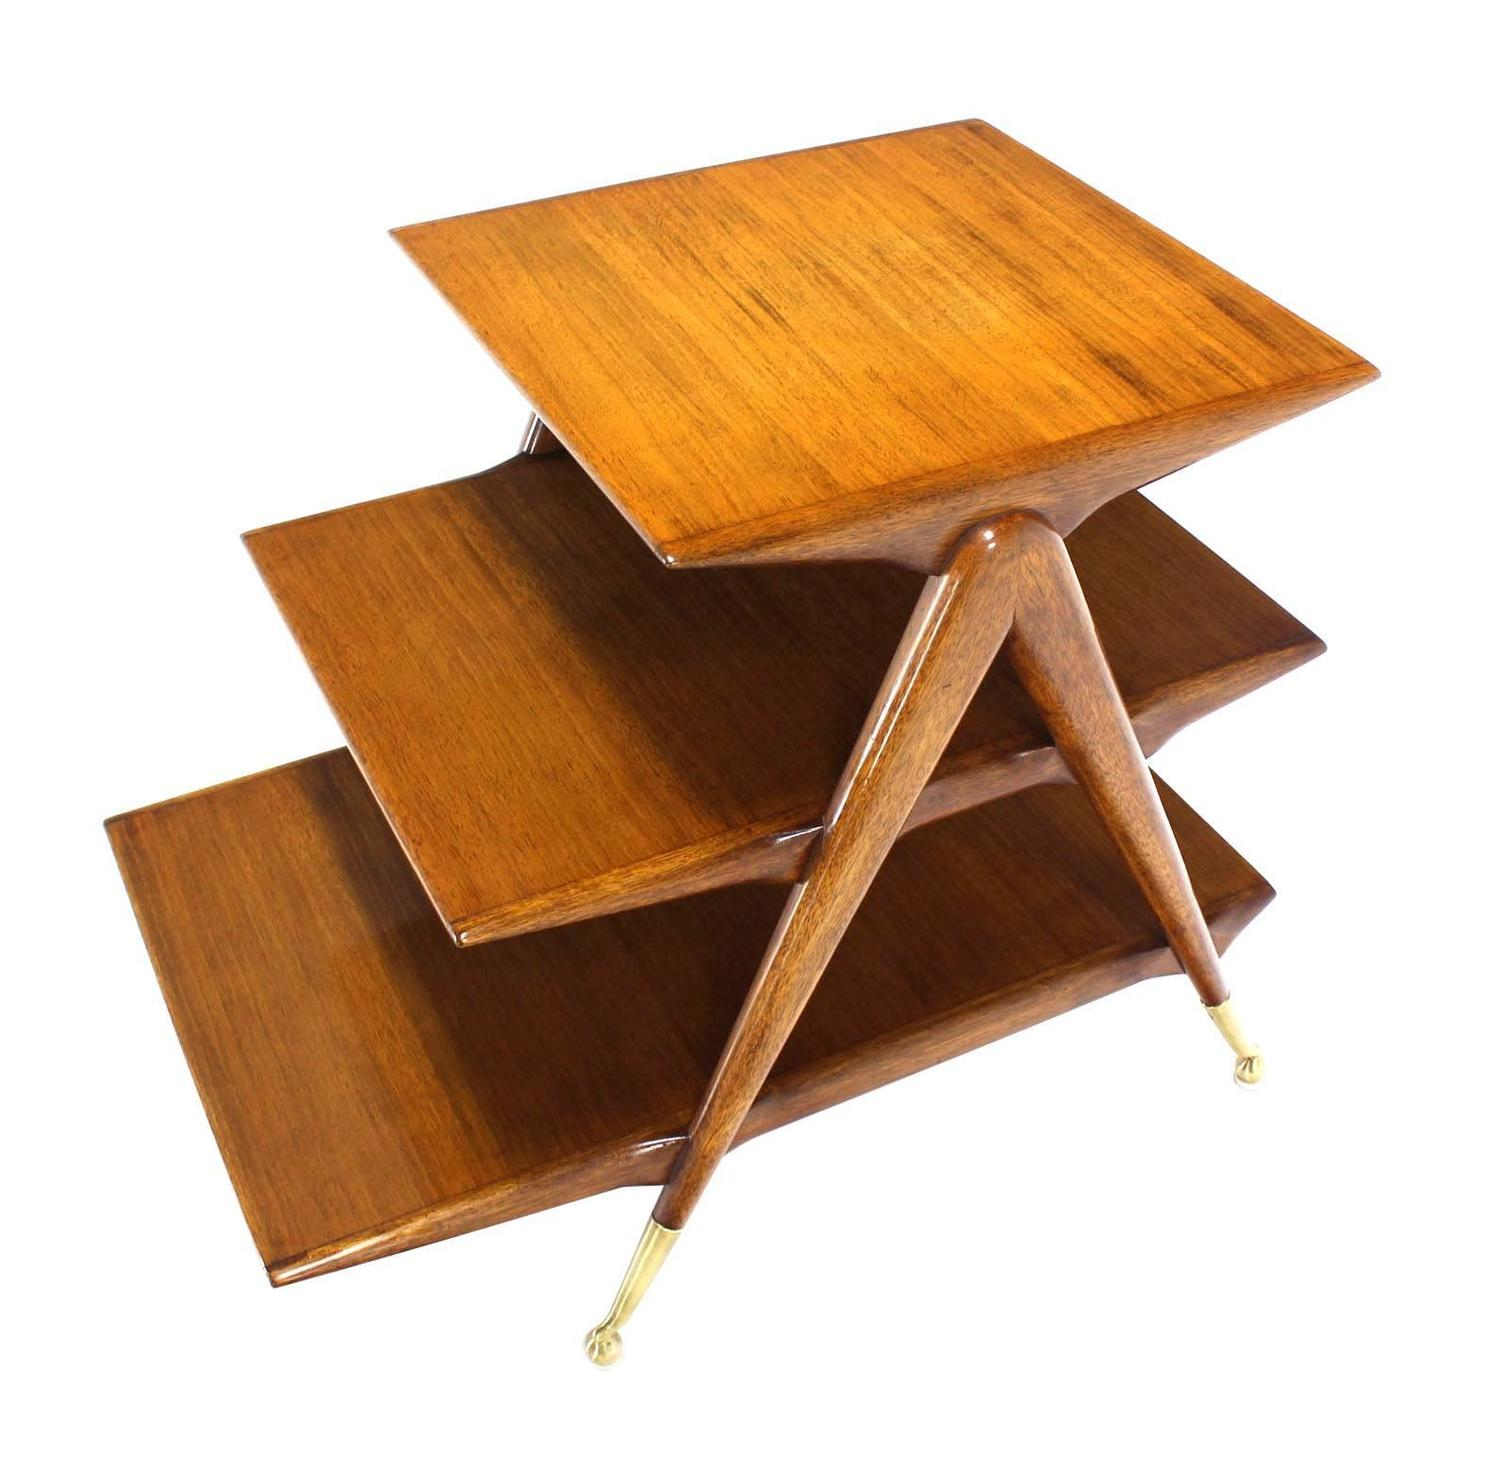 Three tier walnut side table or magazine rack at 1stdibs for Walnut side table